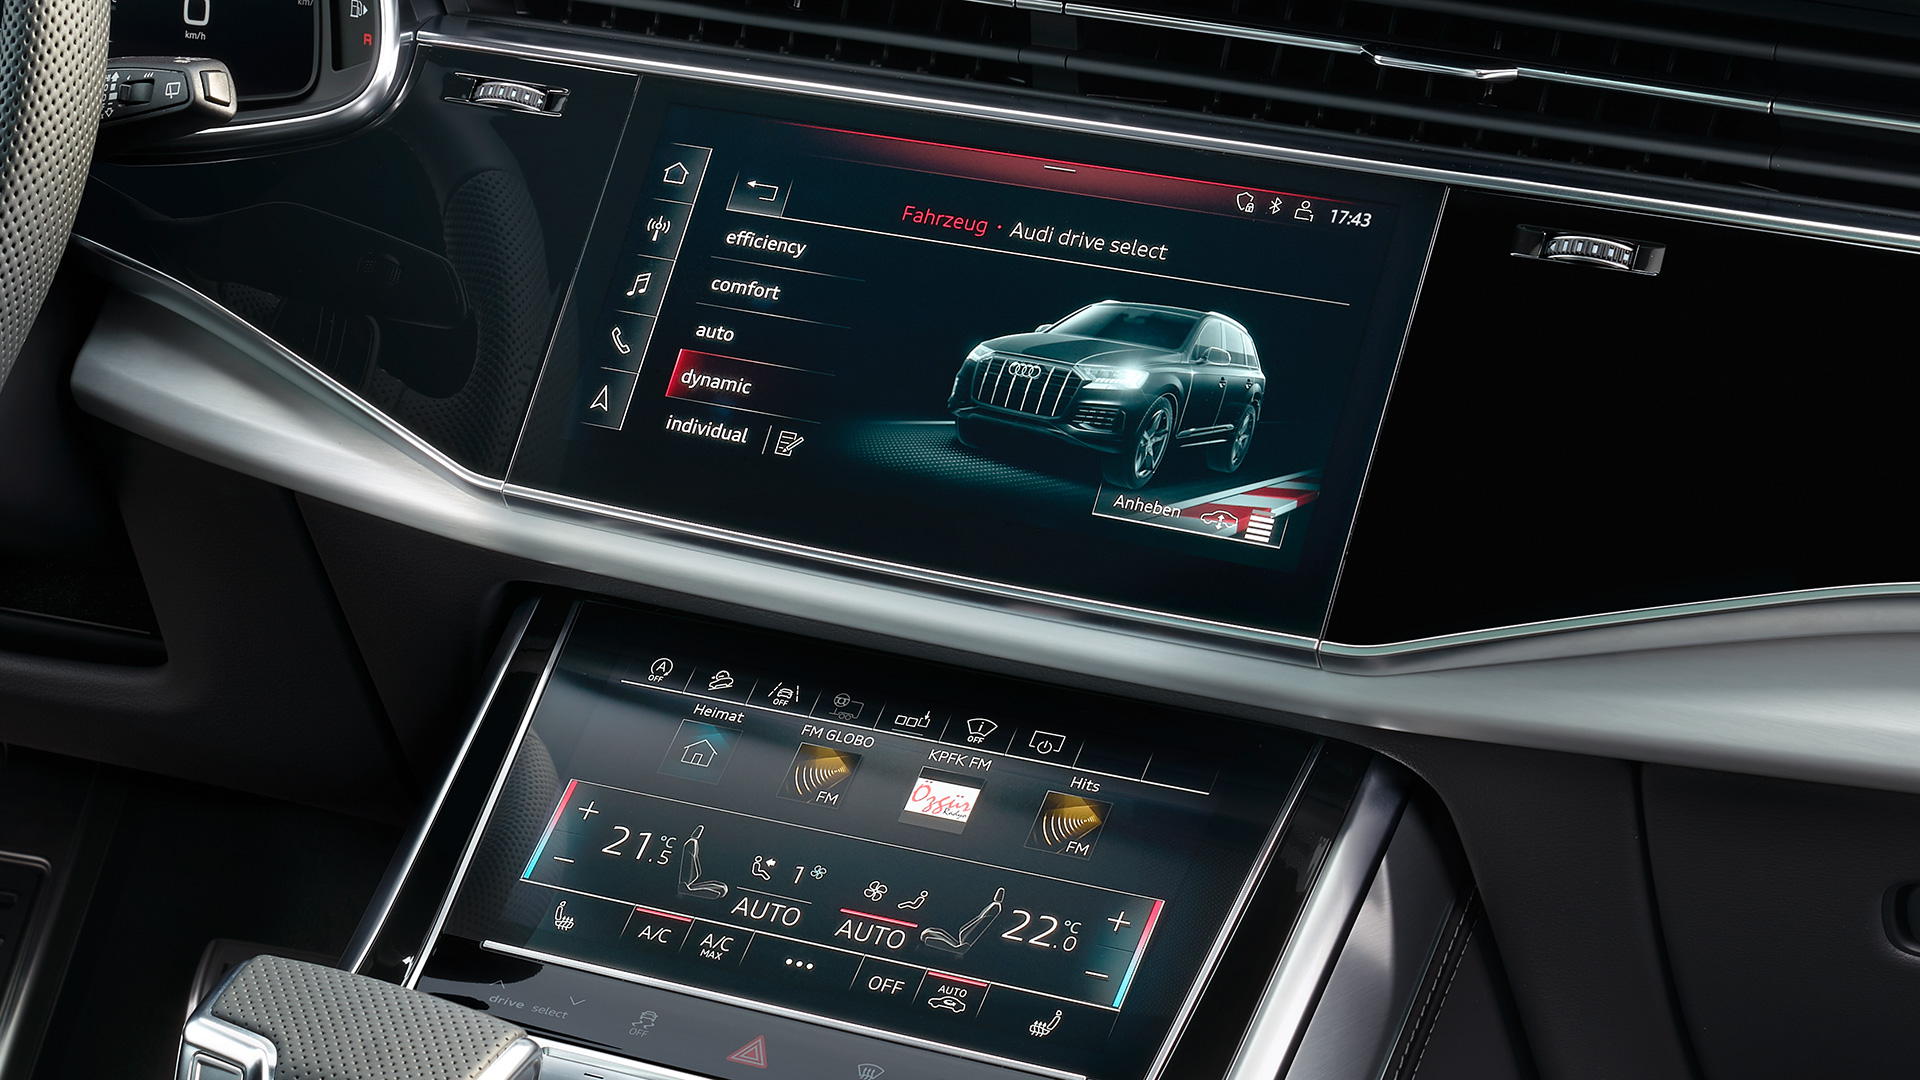 MMI Navigation plus i Audi connect